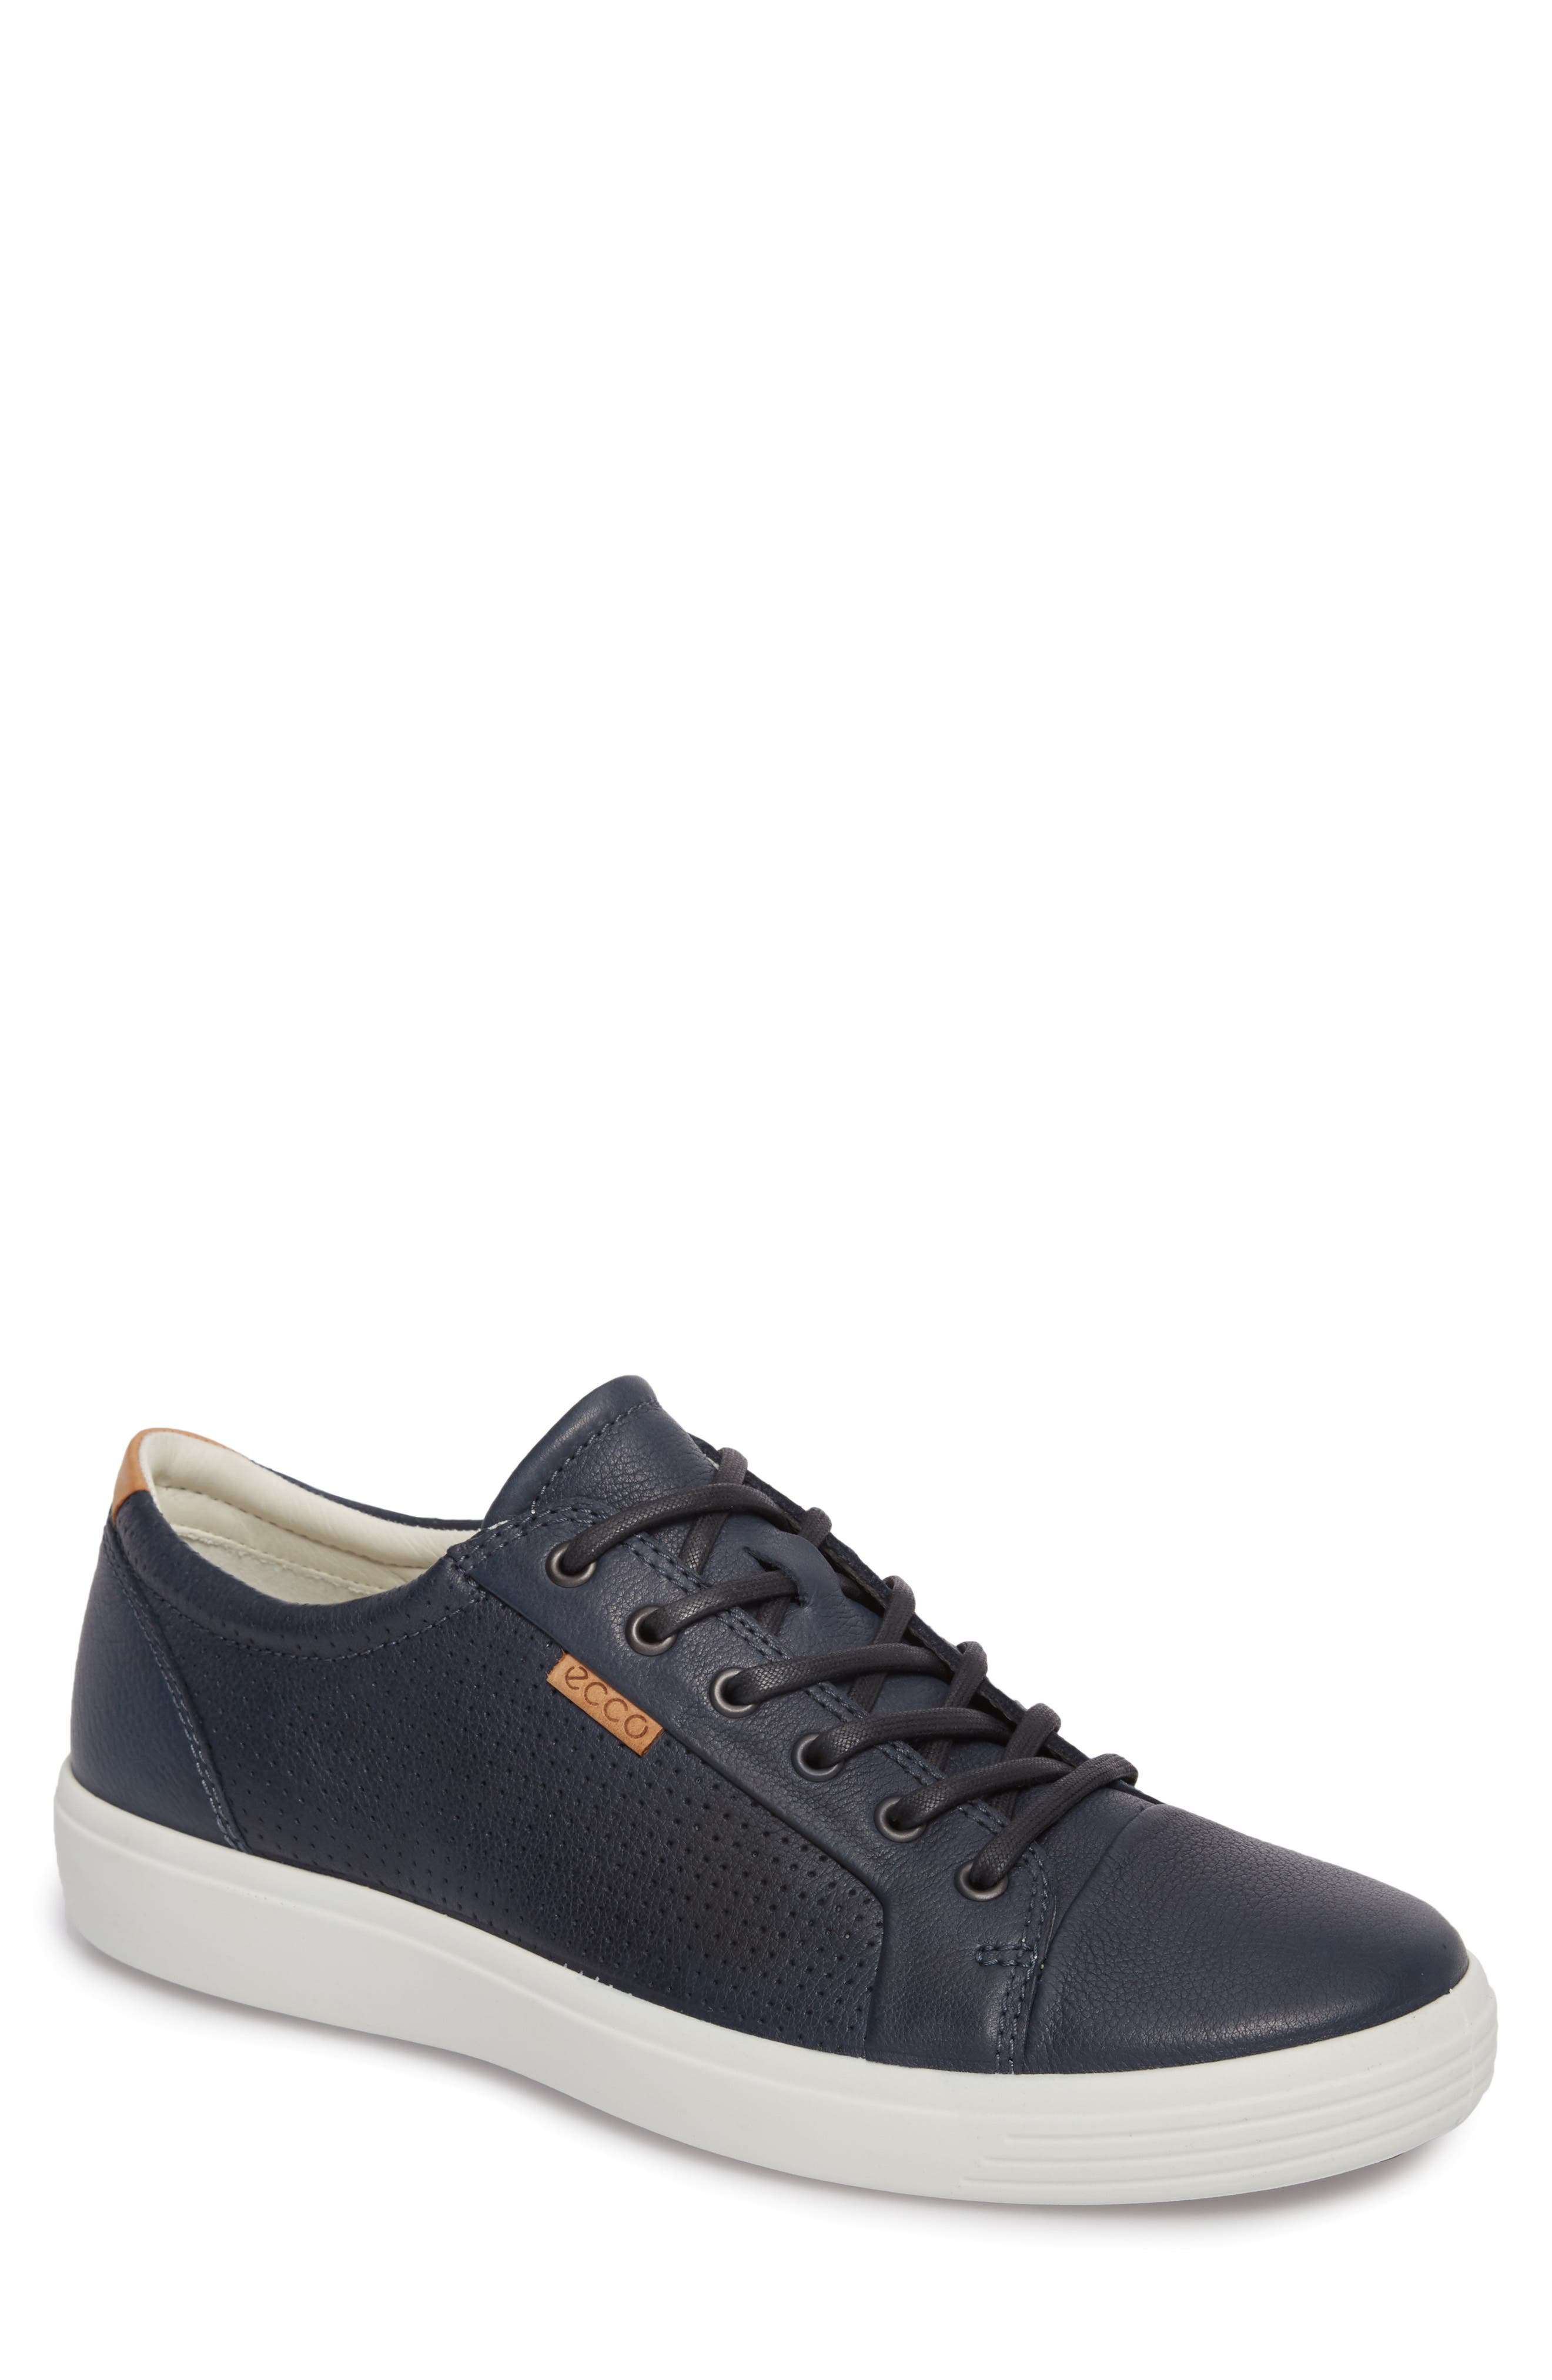 'Soft 7' Sneaker,                             Main thumbnail 1, color,                             Navy Leather